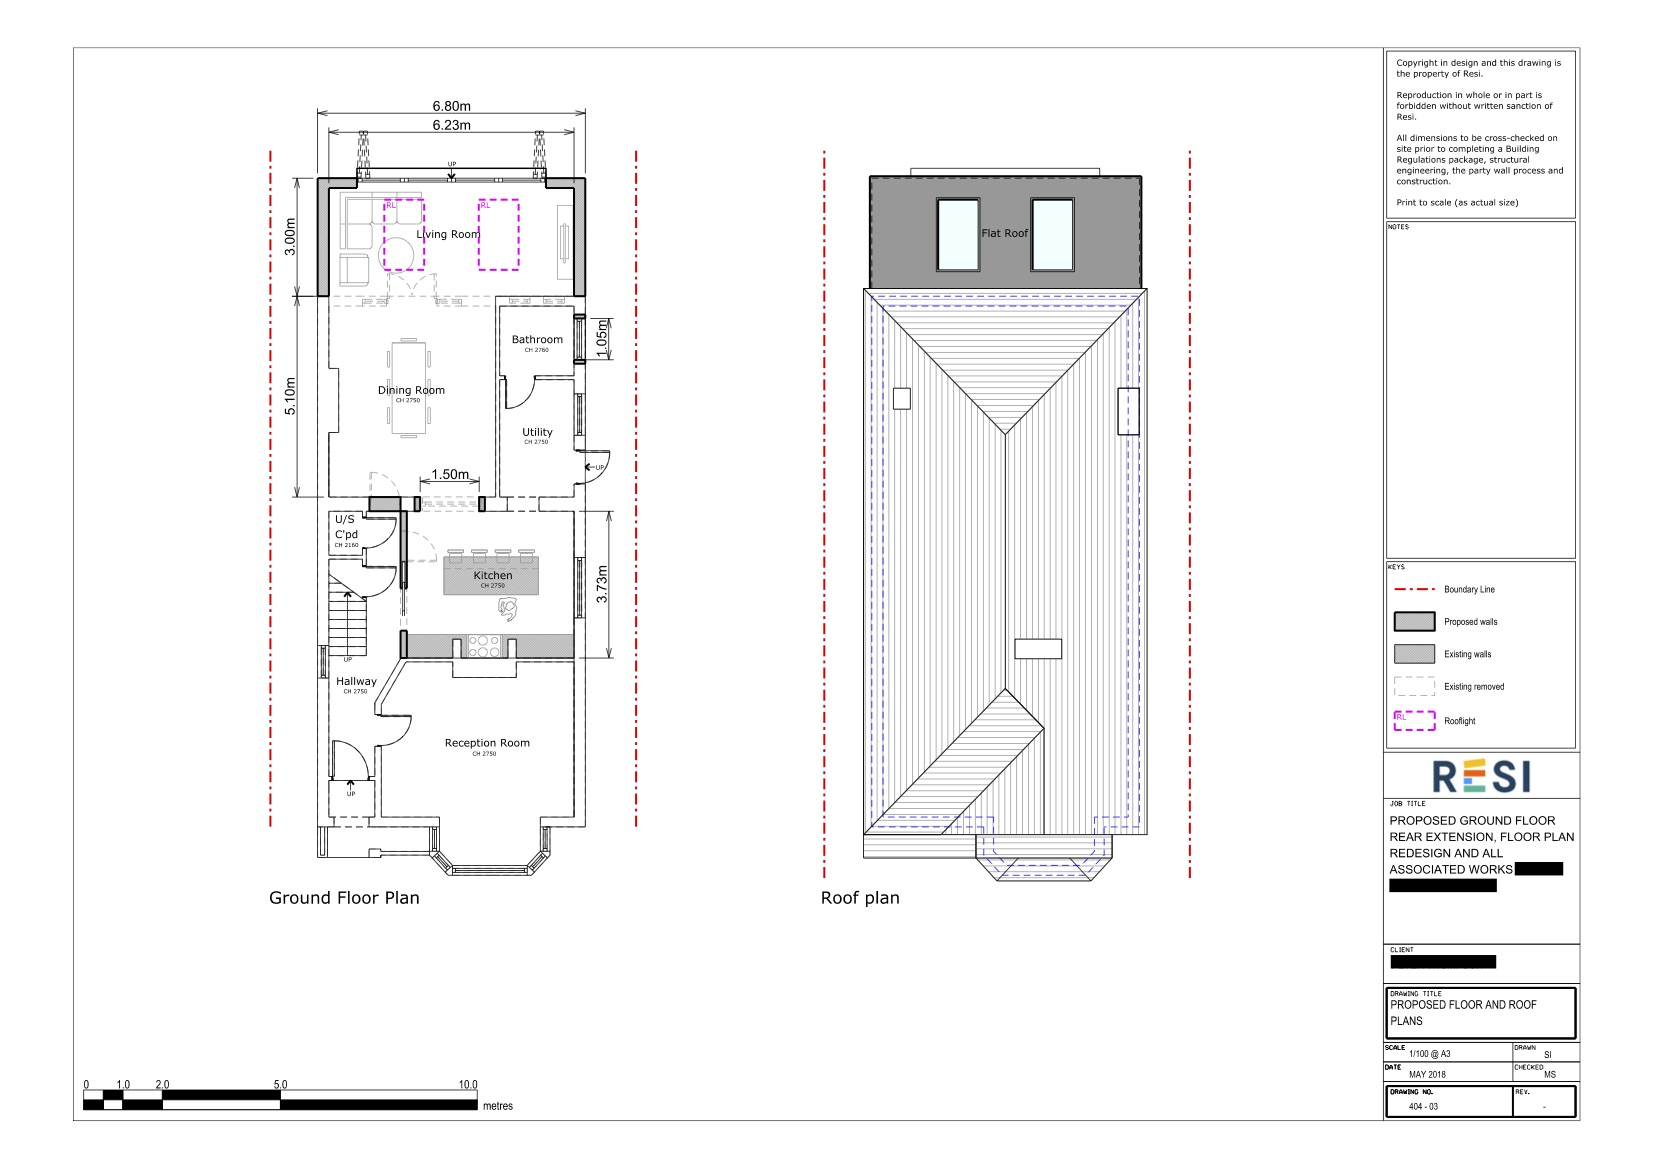 Architectural drawings 25   ground floor plans